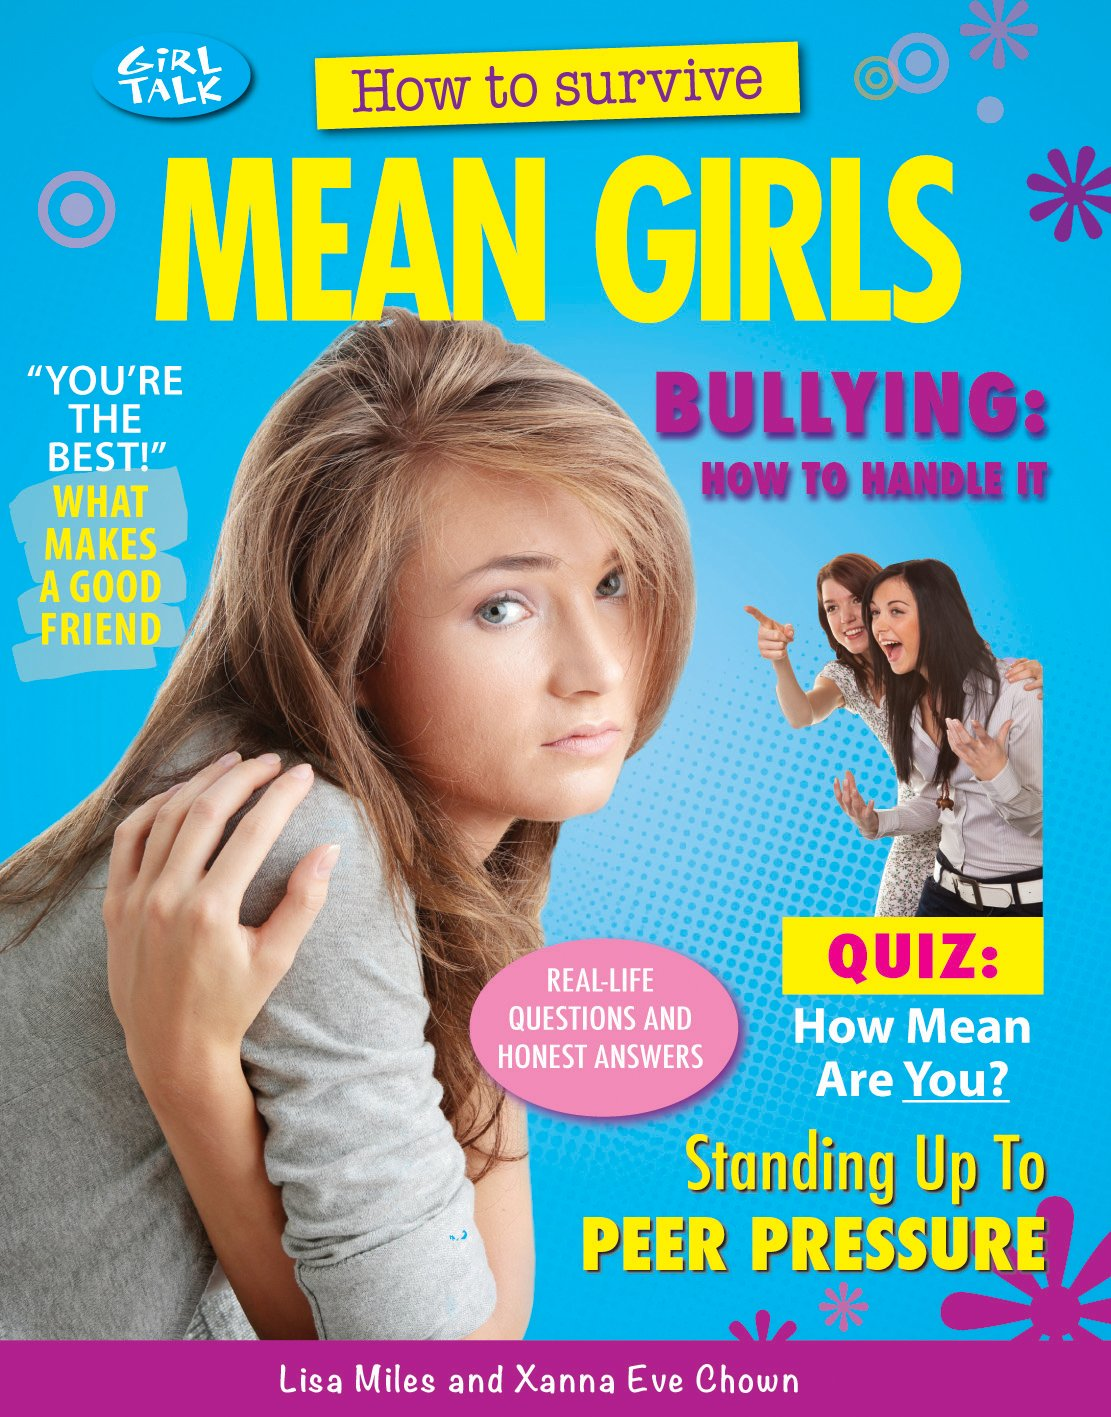 How to Survive Mean Girls (Girl Talk)